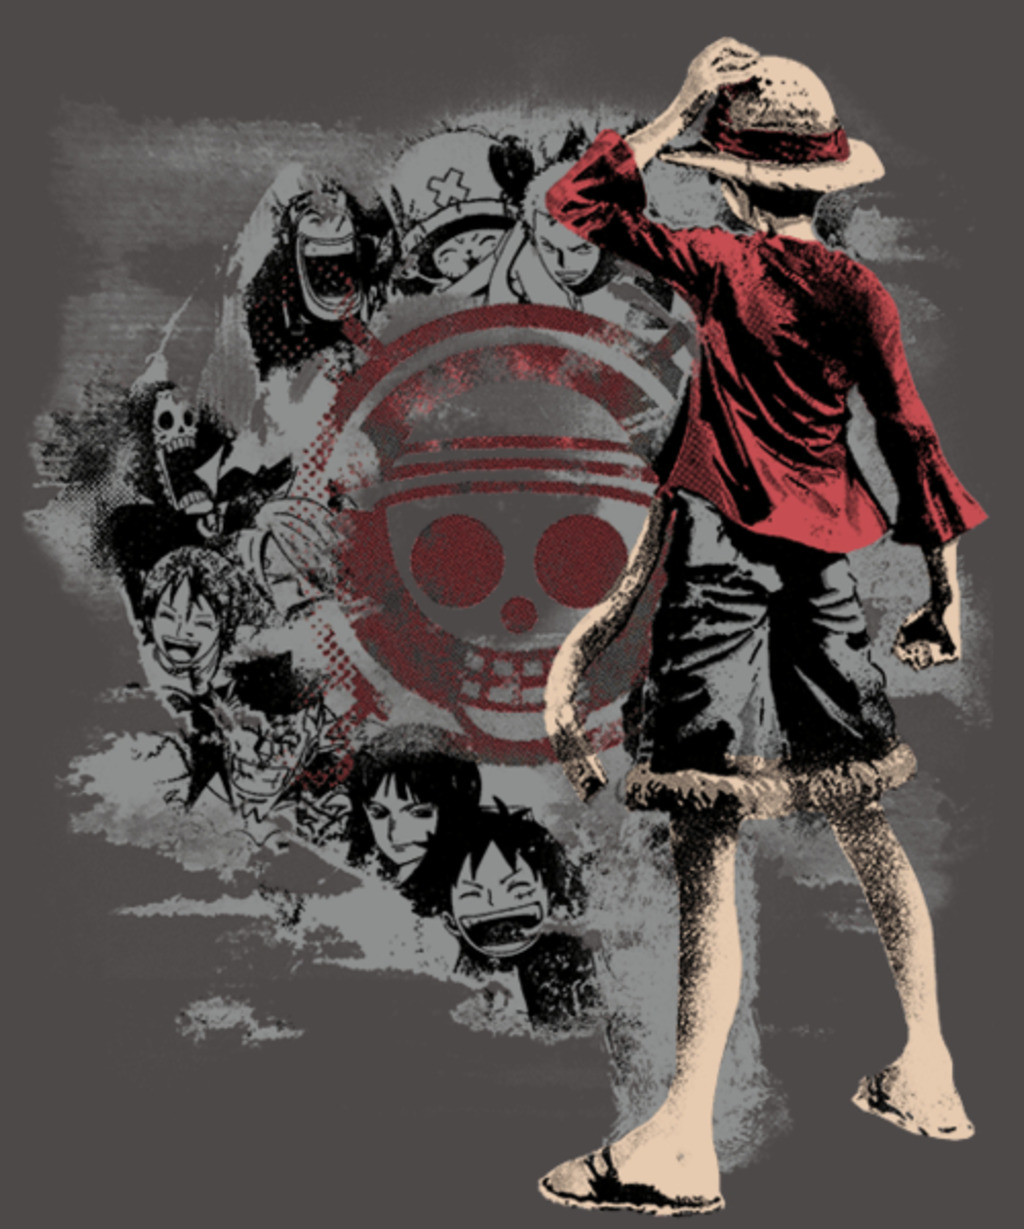 Qwertee: Straw Hats